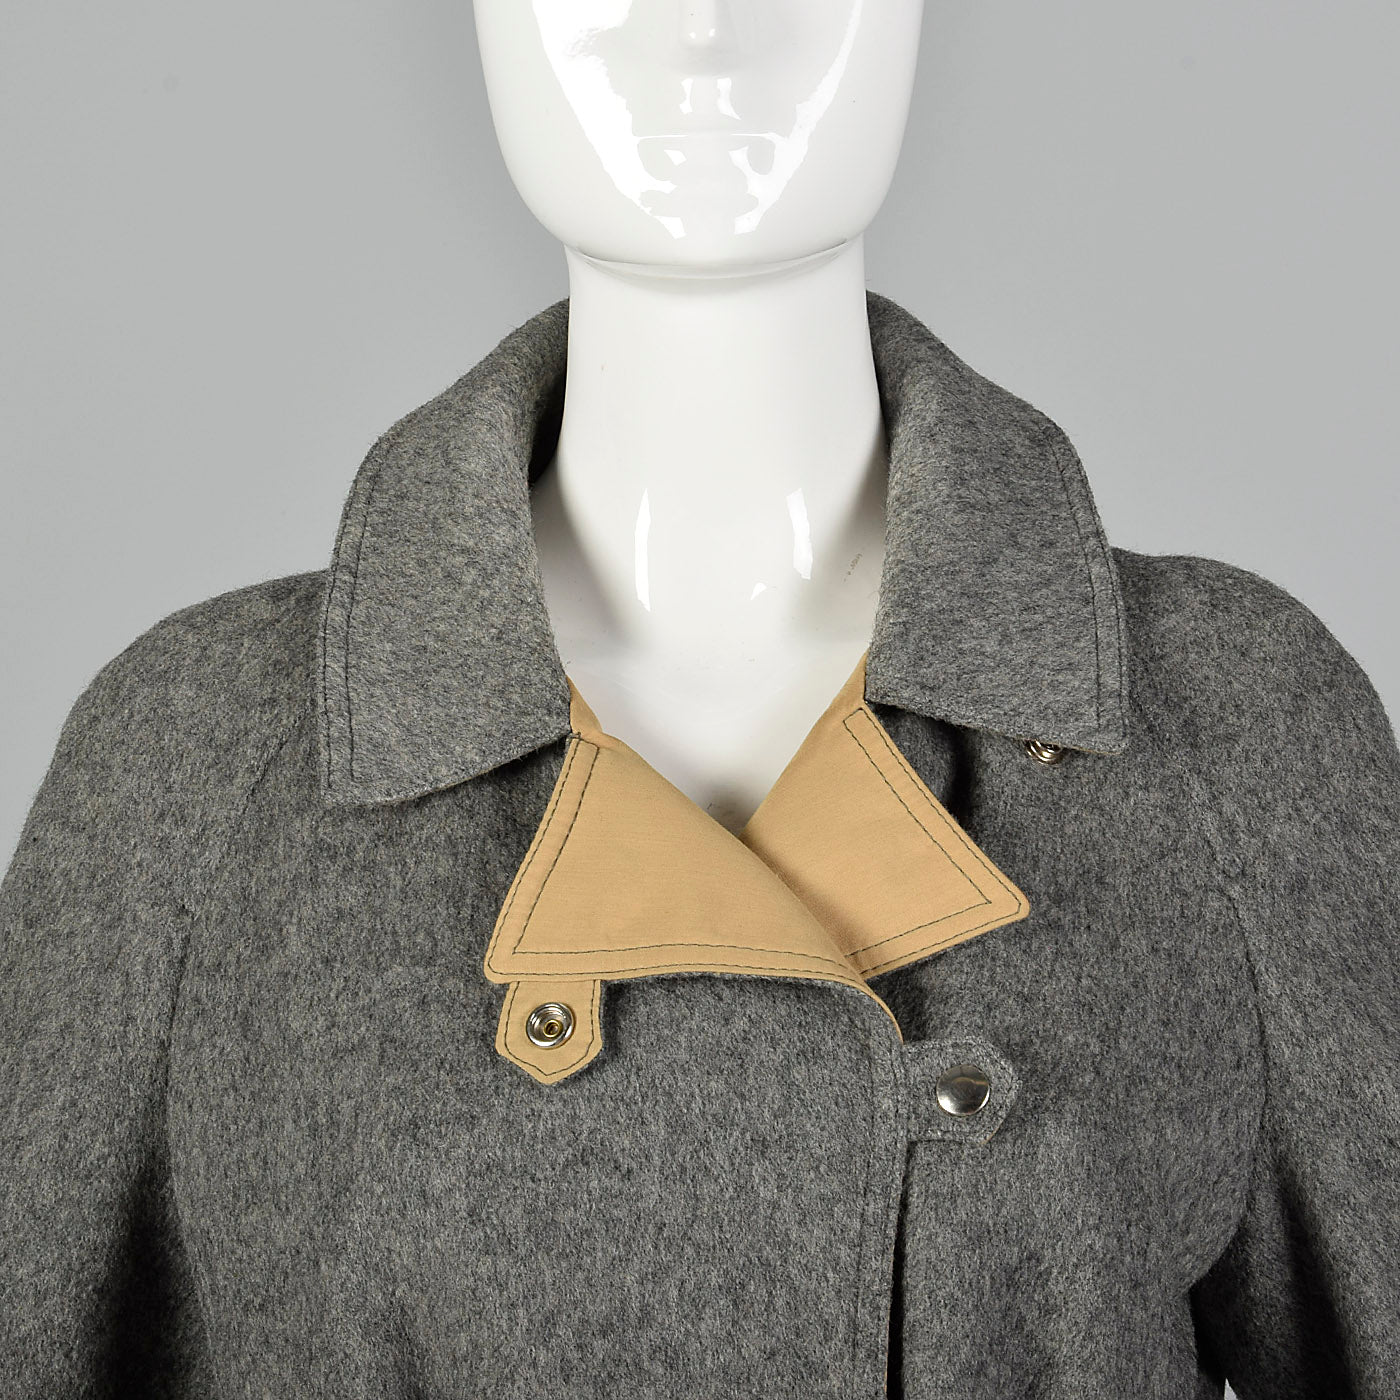 1970s Wool and Canvas Trench Coat with Snap Closures